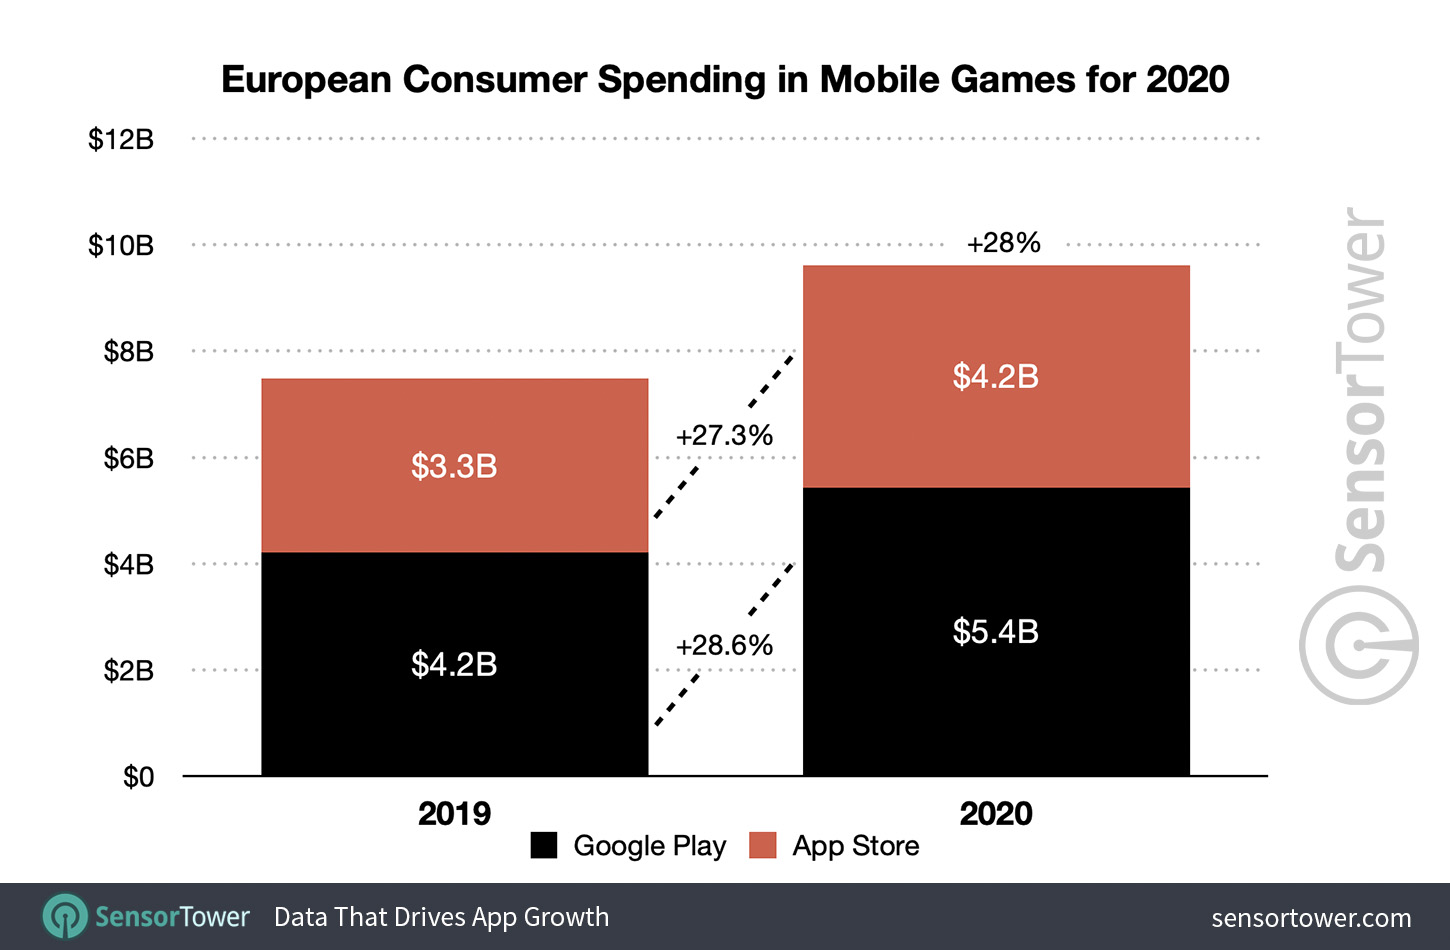 European Consumer Spending in Mobile Games for 2020